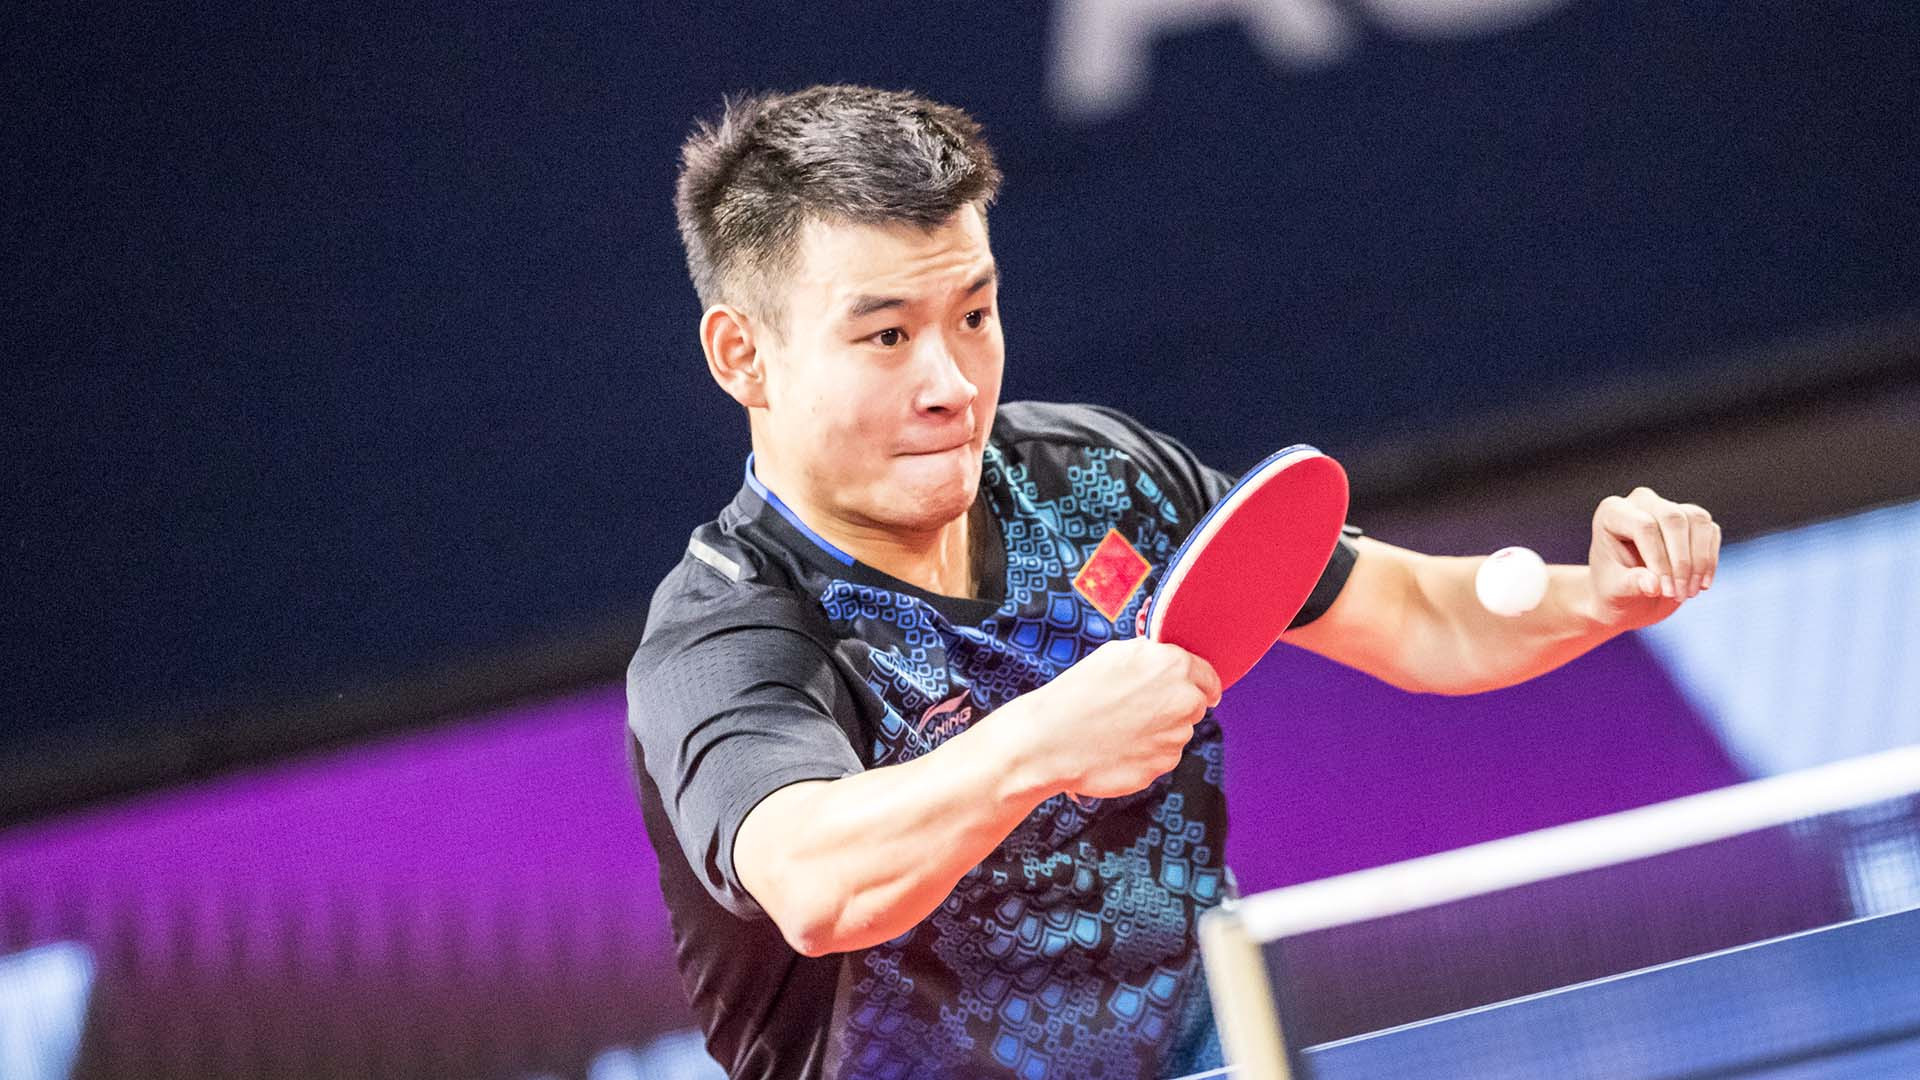 World number 140 Liu Dingshuo qualified for the men's singles final ©ITTF/APAC Sport Media